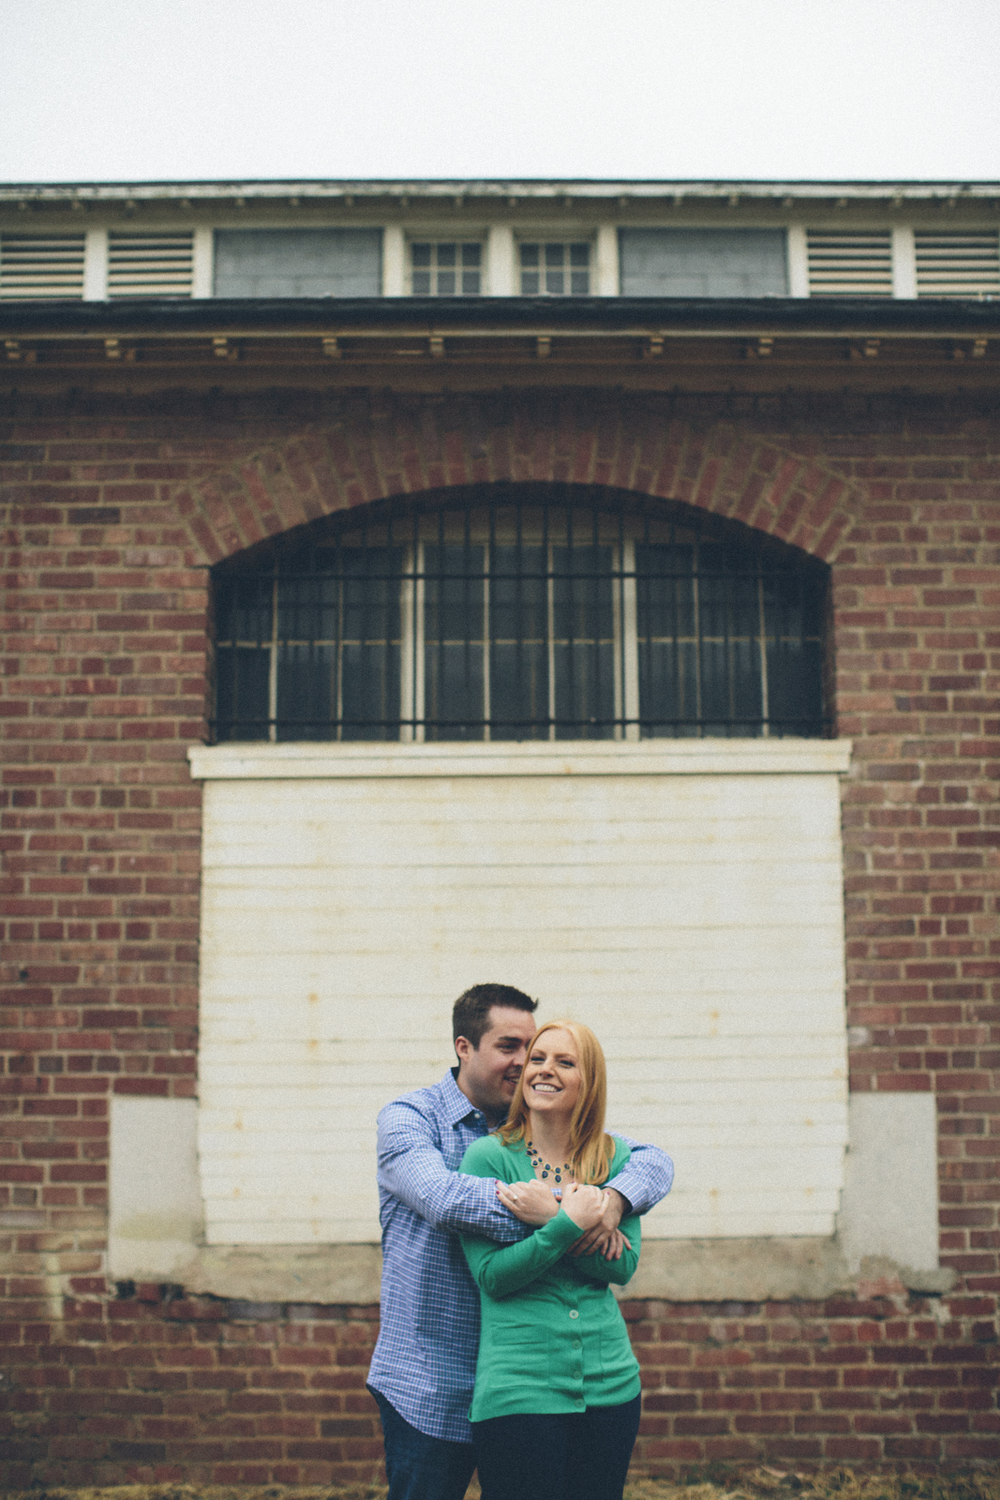 LAUREN_AND_DAVE_ENGAGEMENT-0001.jpg